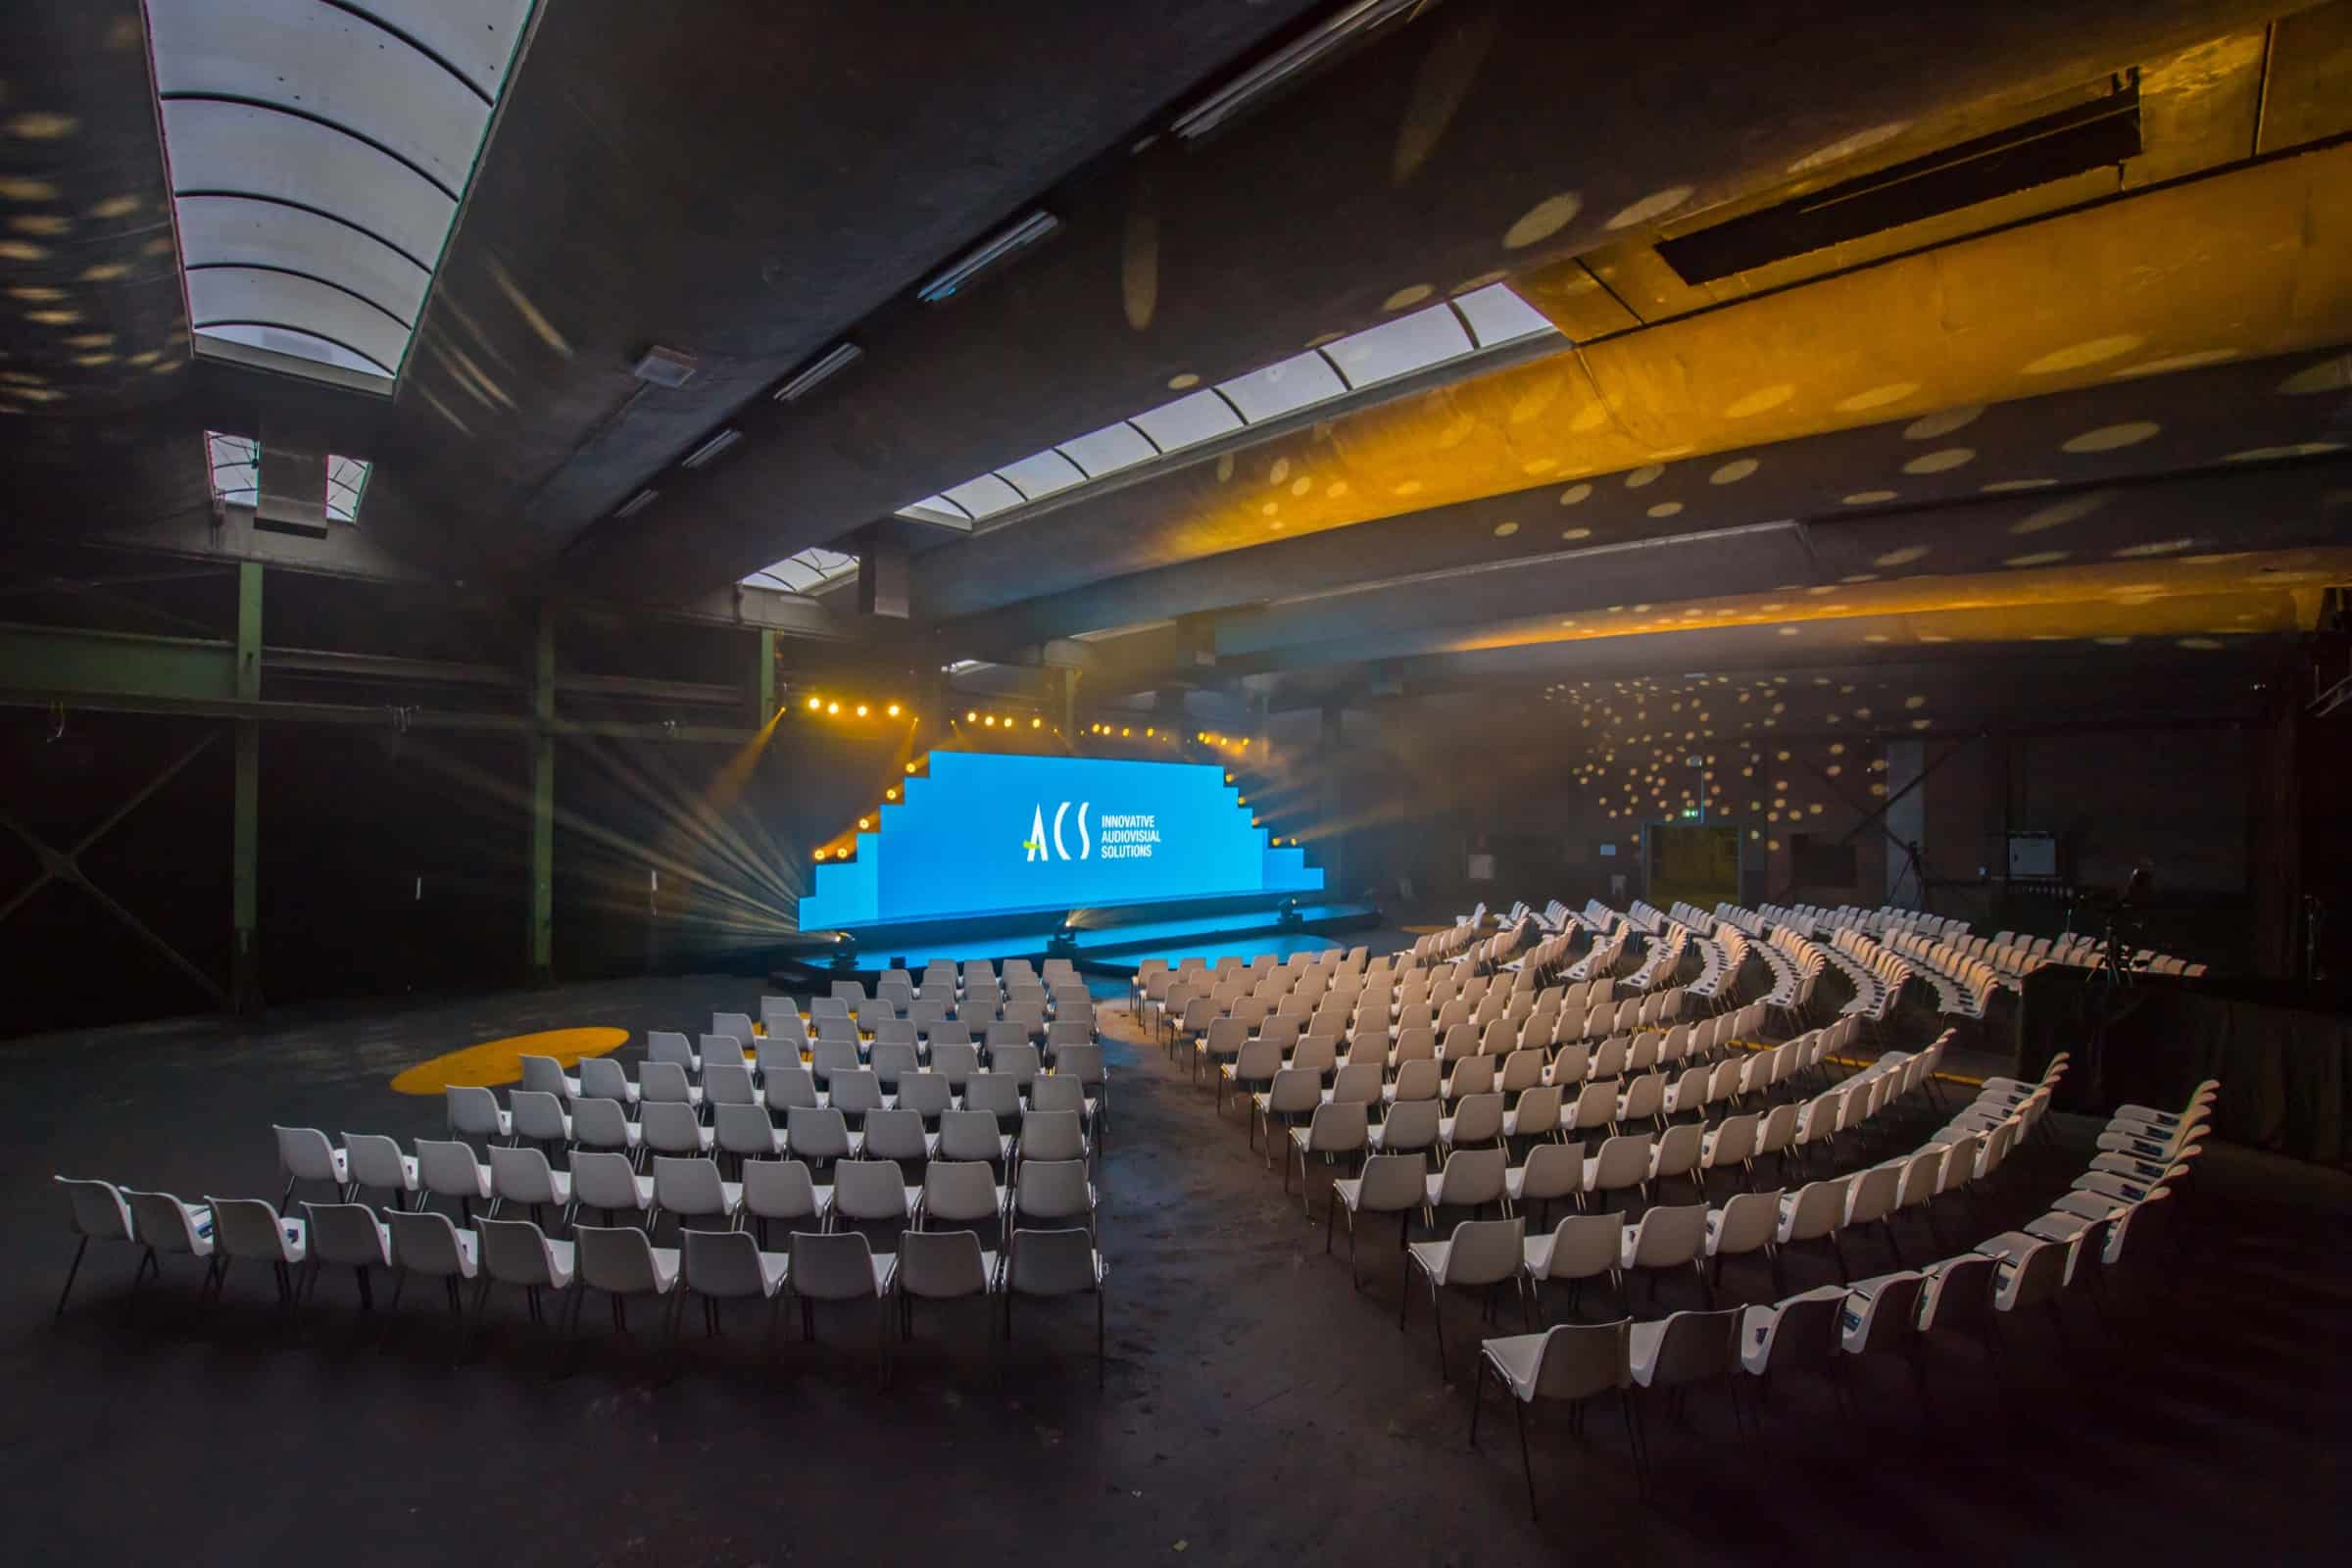 AACS audiovisual solutions - Mapping, Hologram, Beeld, Licht & Geluid - corporate events 8 - Anneke Postma